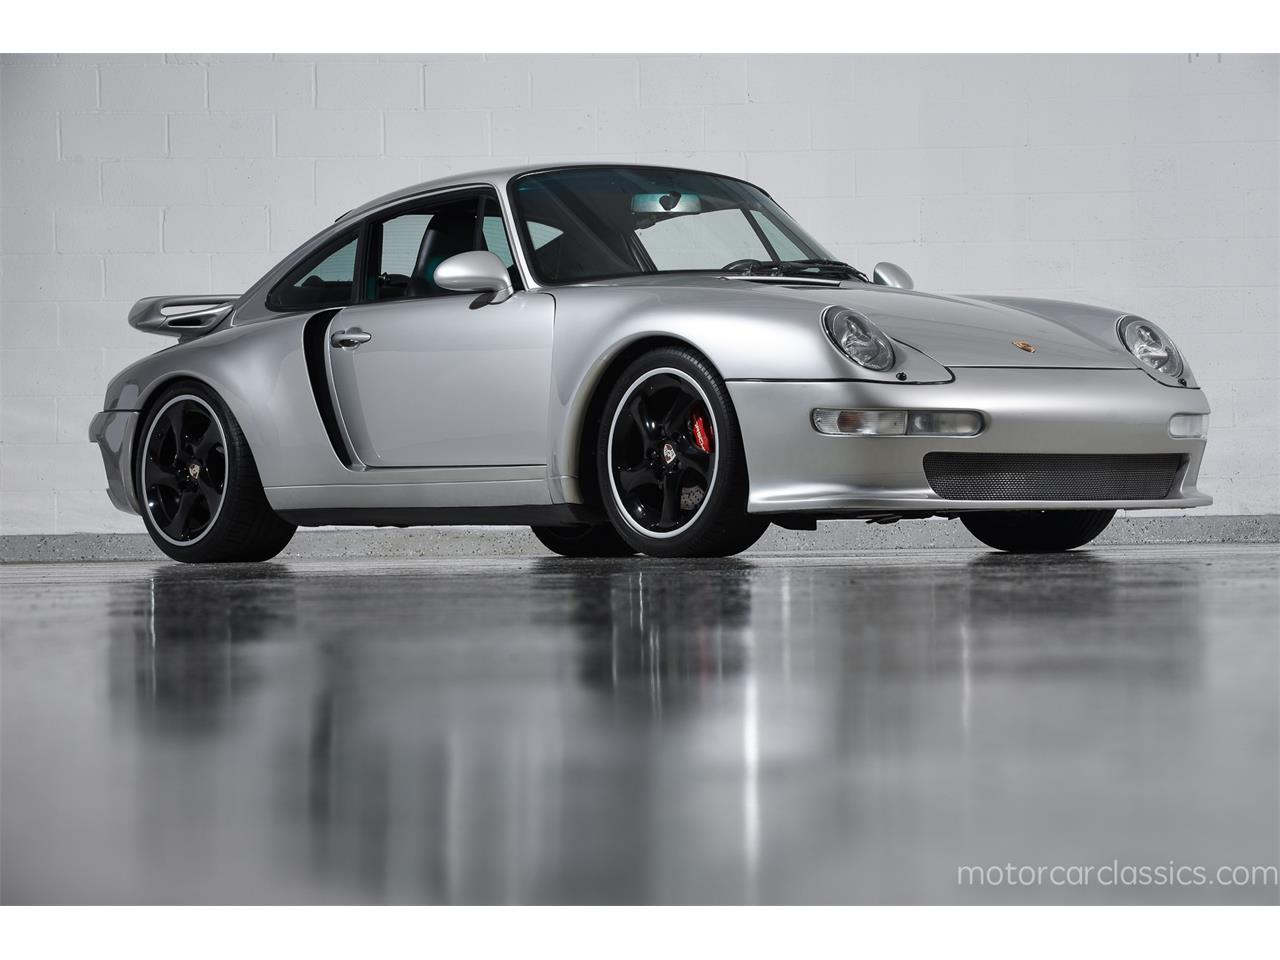 Large Picture of '96 Porsche 911 Turbo located in Farmingdale New York - $69,900.00 Offered by Motorcar Classics - MBOA